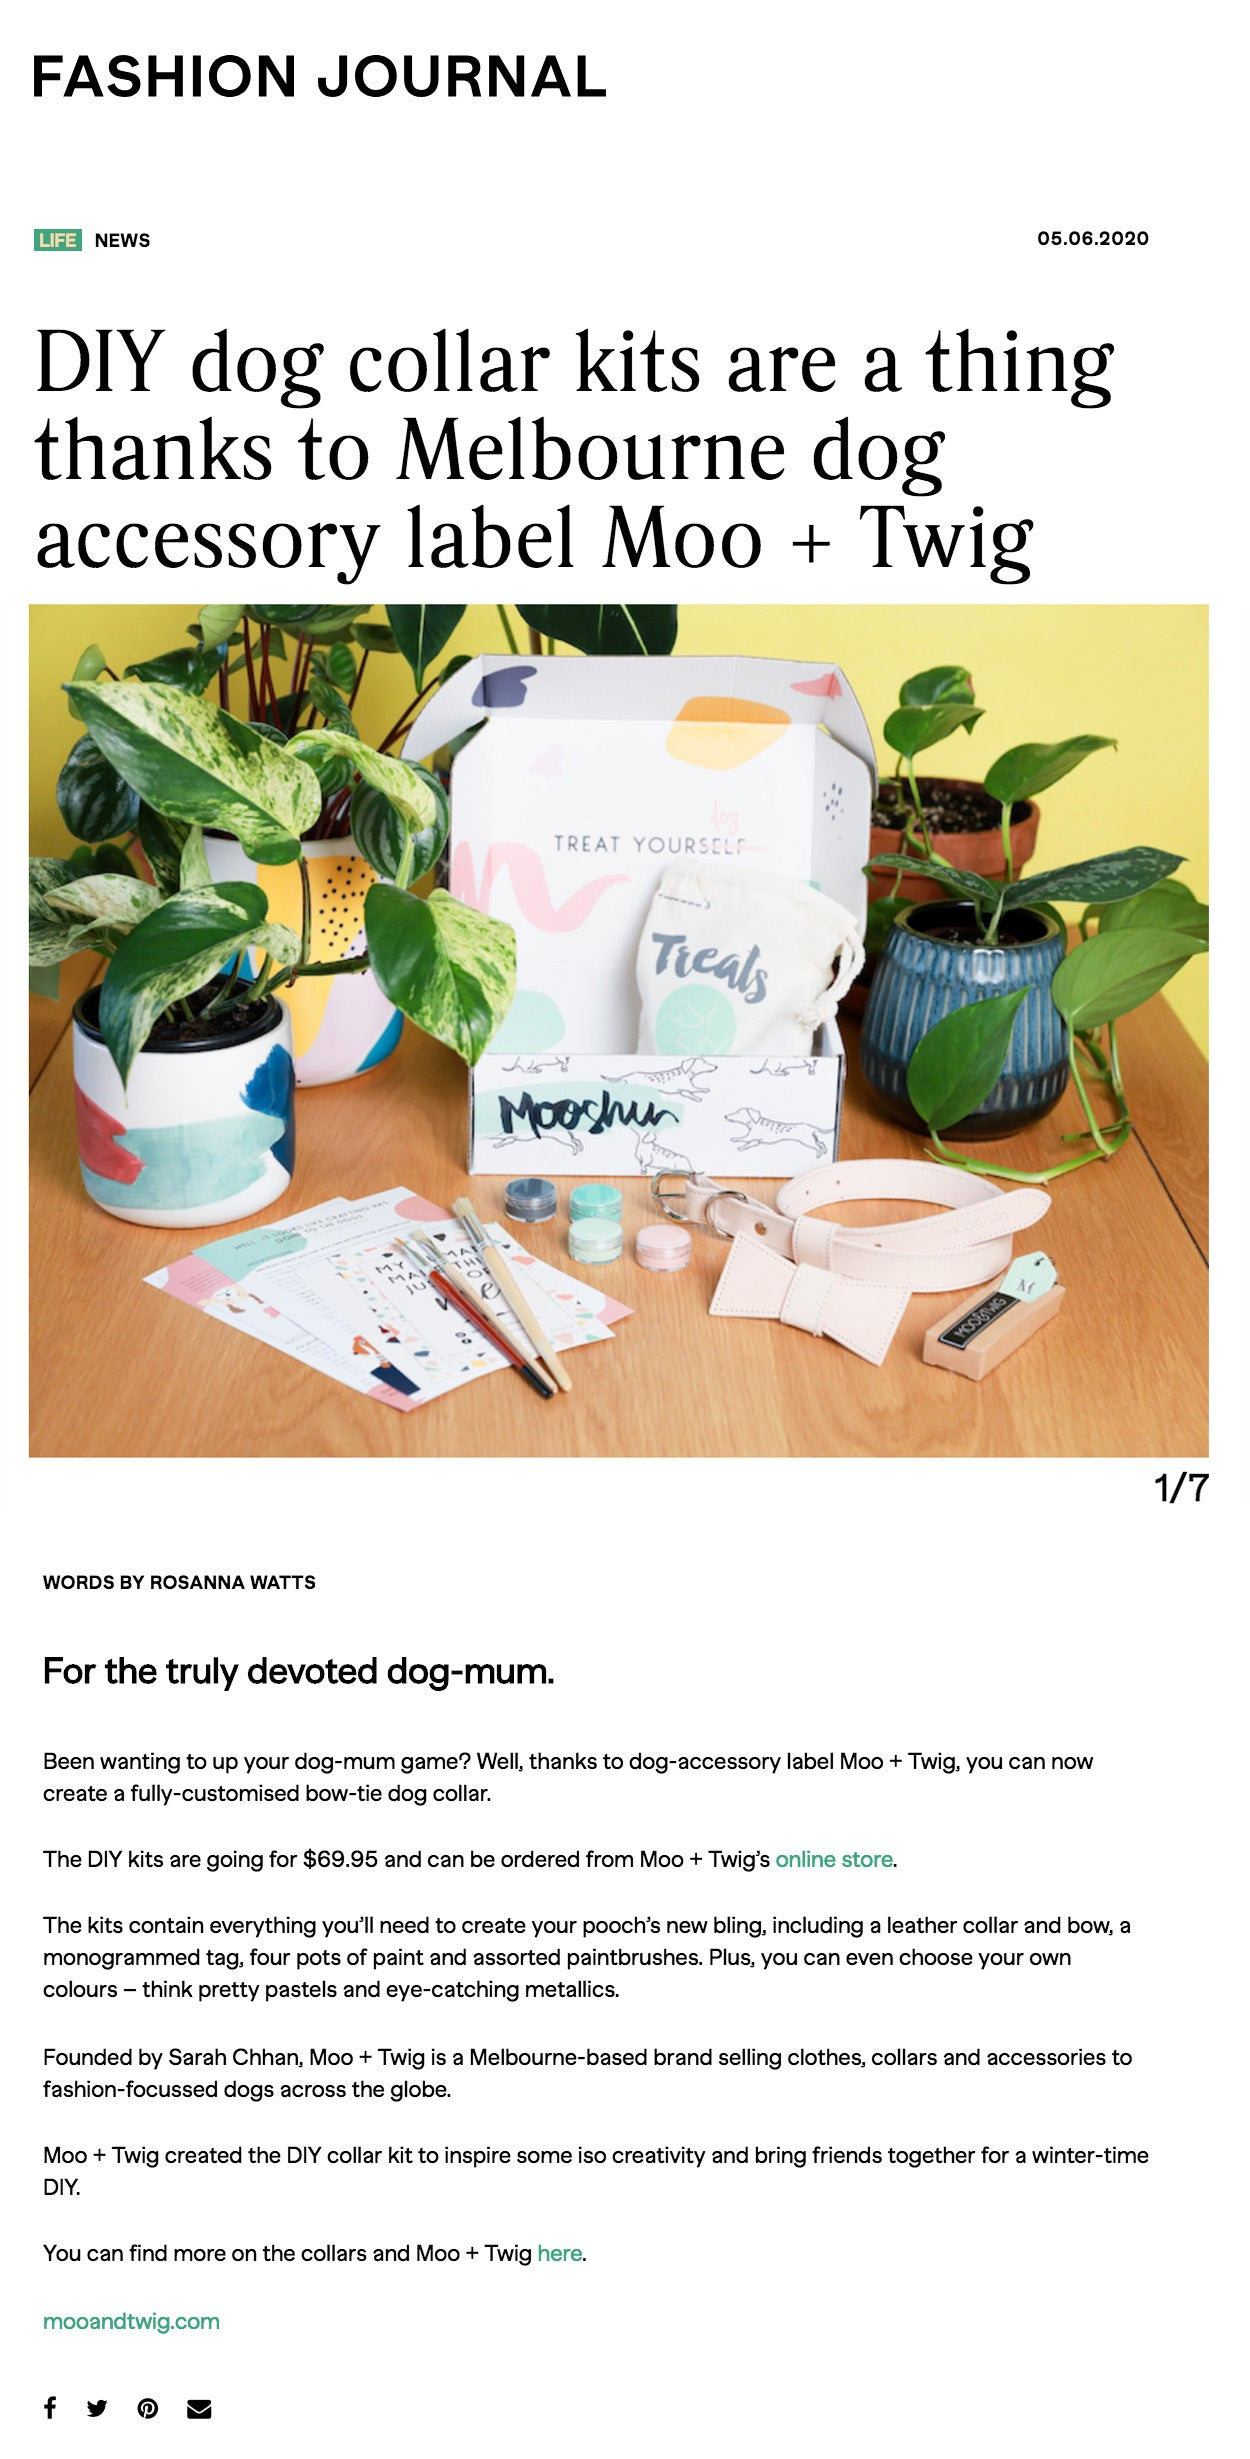 Fashion Journal Magazine - Moo + Twig DIY Dog Collar Kit